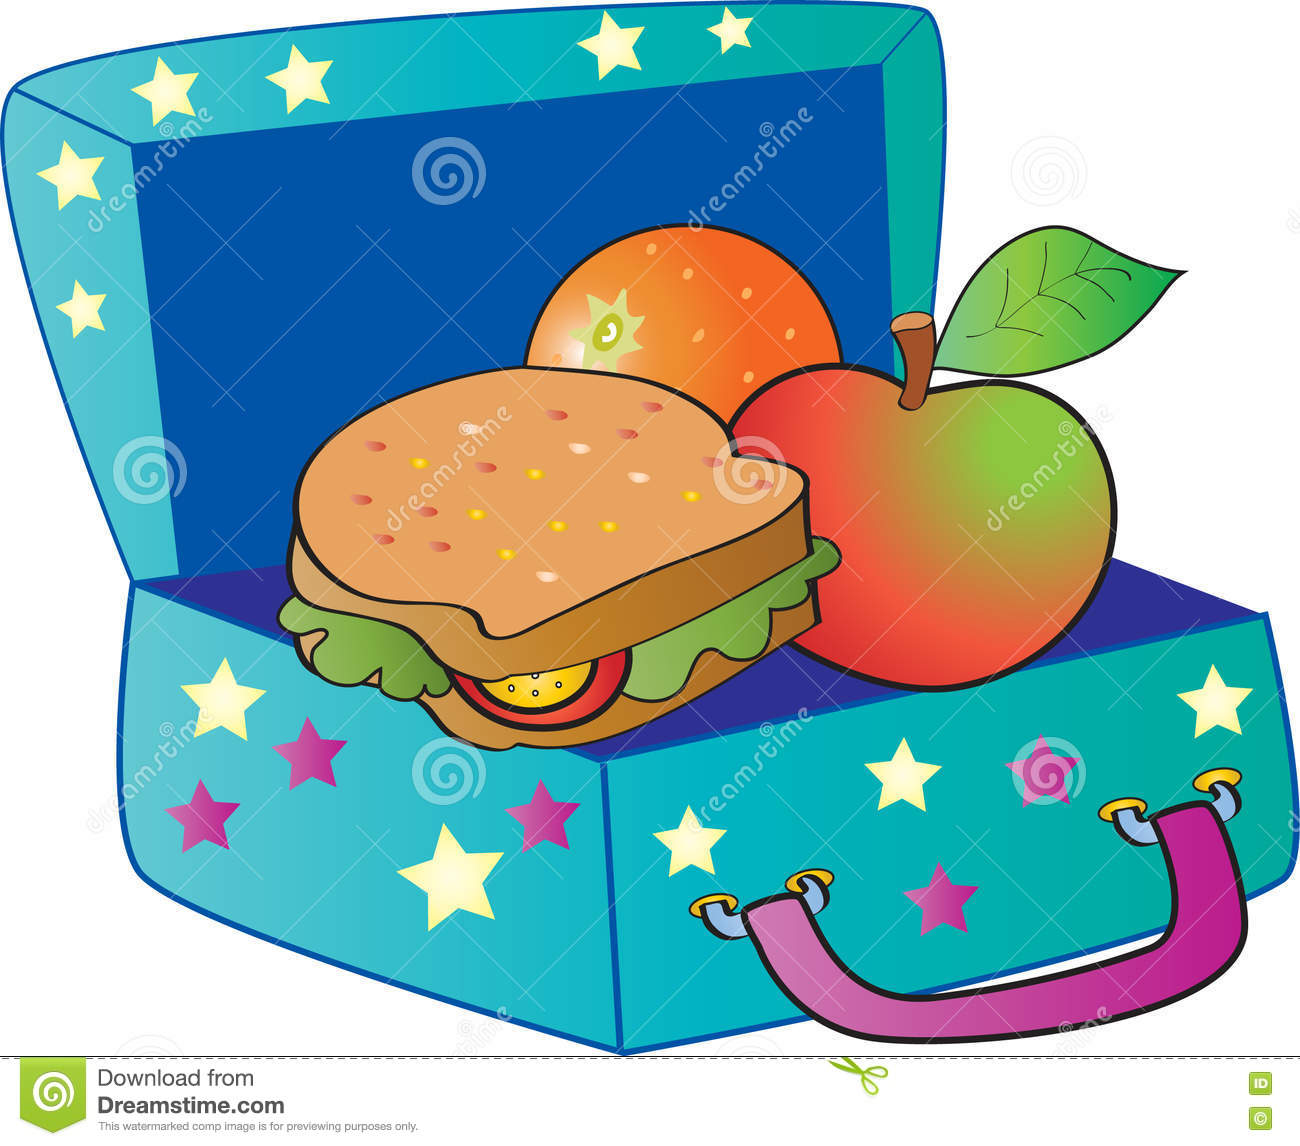 Collection of free download. Lunchbox clipart healthy breakfast